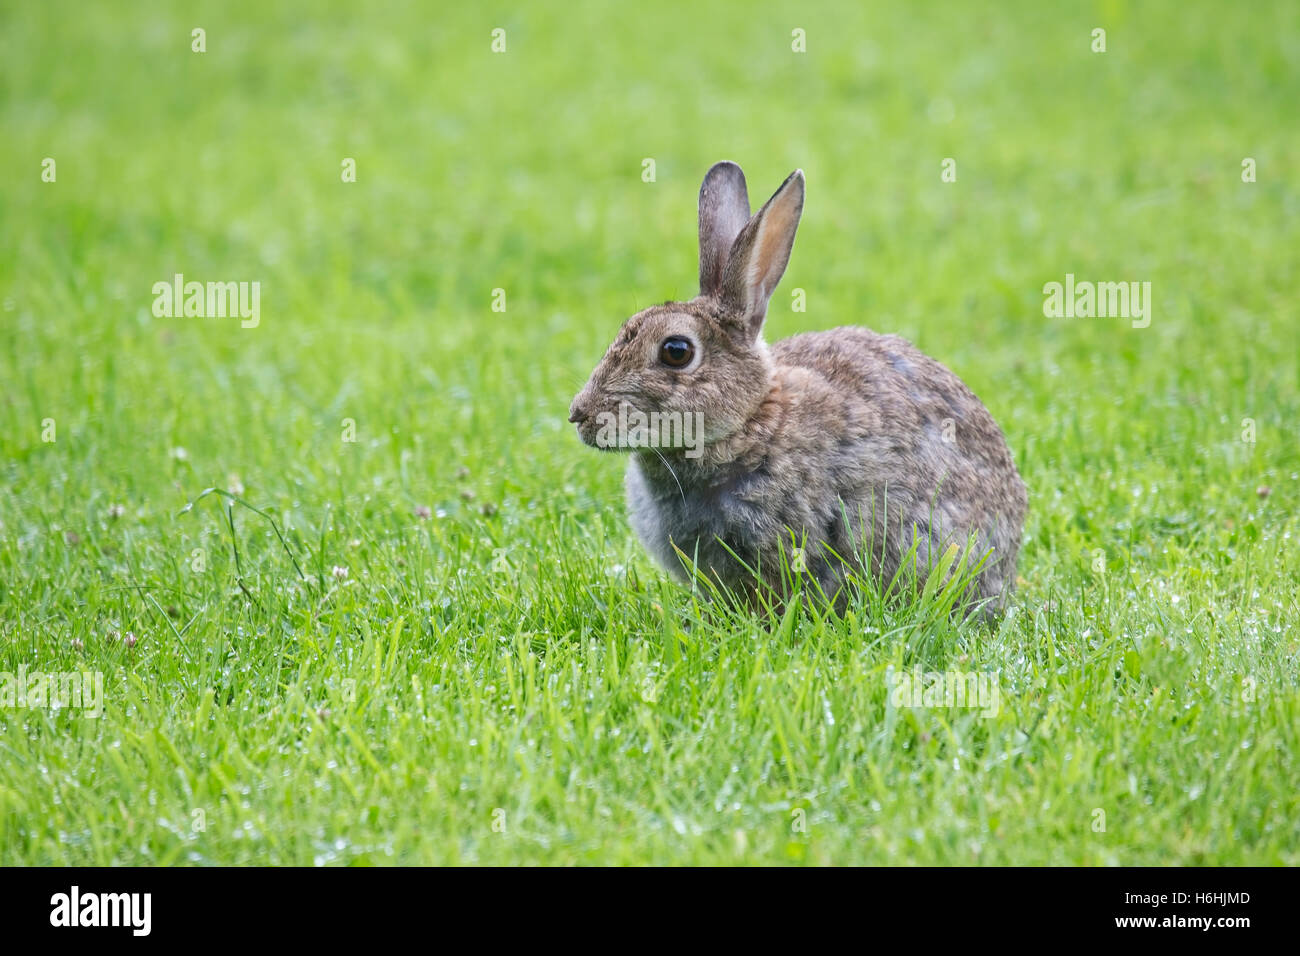 European Rabbit Oryctolagus cuniculus with ears pricked and wide eyed  looking alert in a grass field - Stock Image